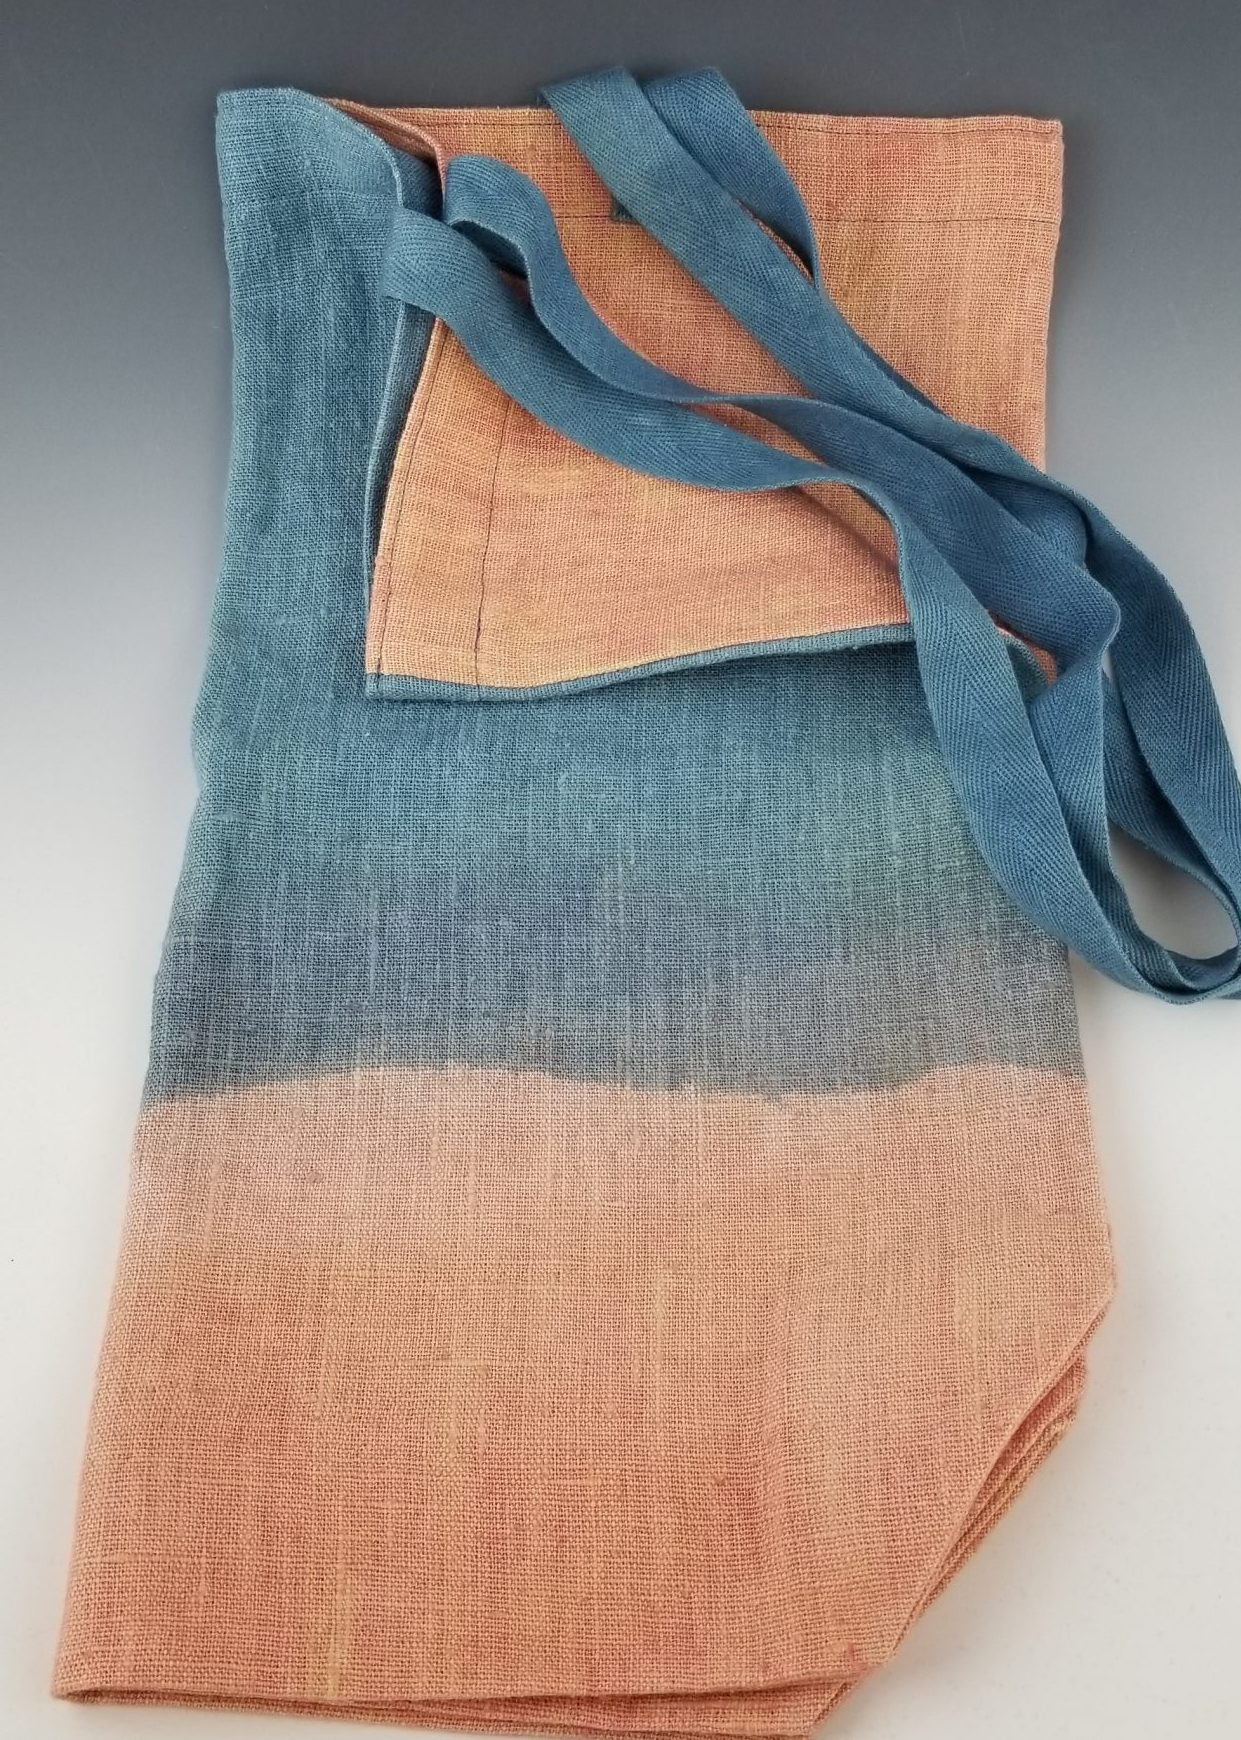 Large Linen Canvas Bag, indigo and peach